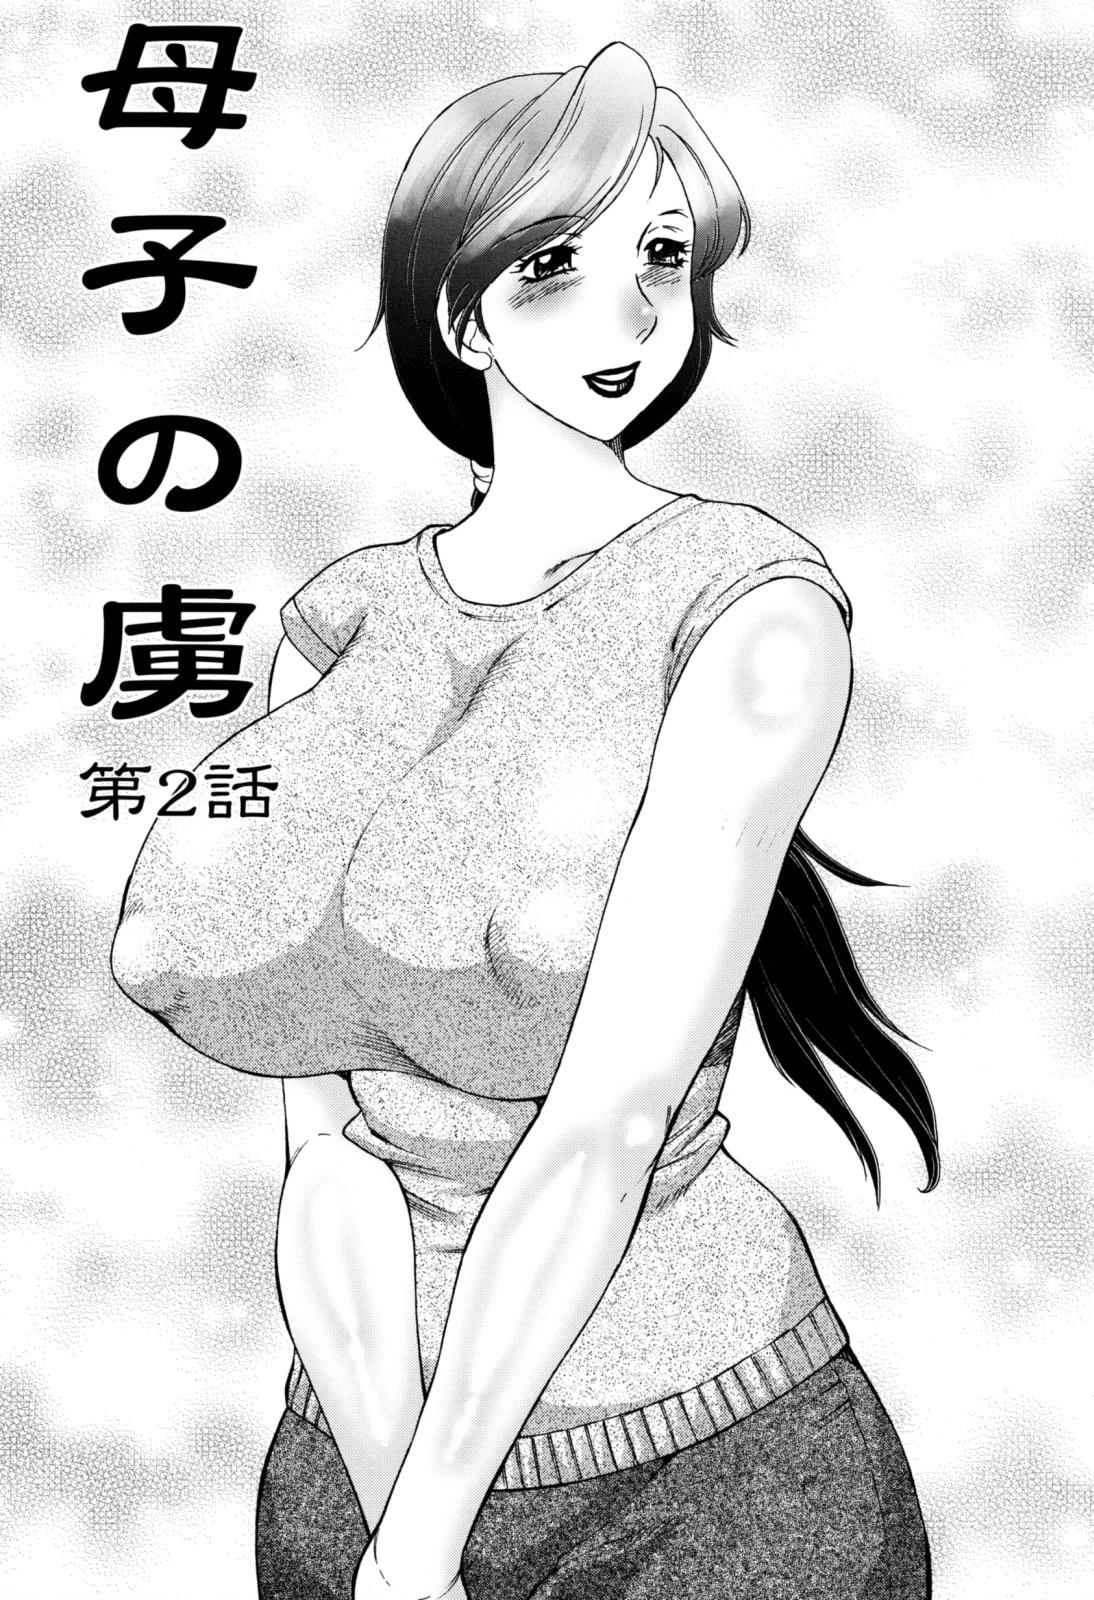 [Fuusen Club] Boshino Toriko - The Captive of Mother and the Son | Enslaved Mother and Son Ch. 1-5 [English] [SaHa] 24